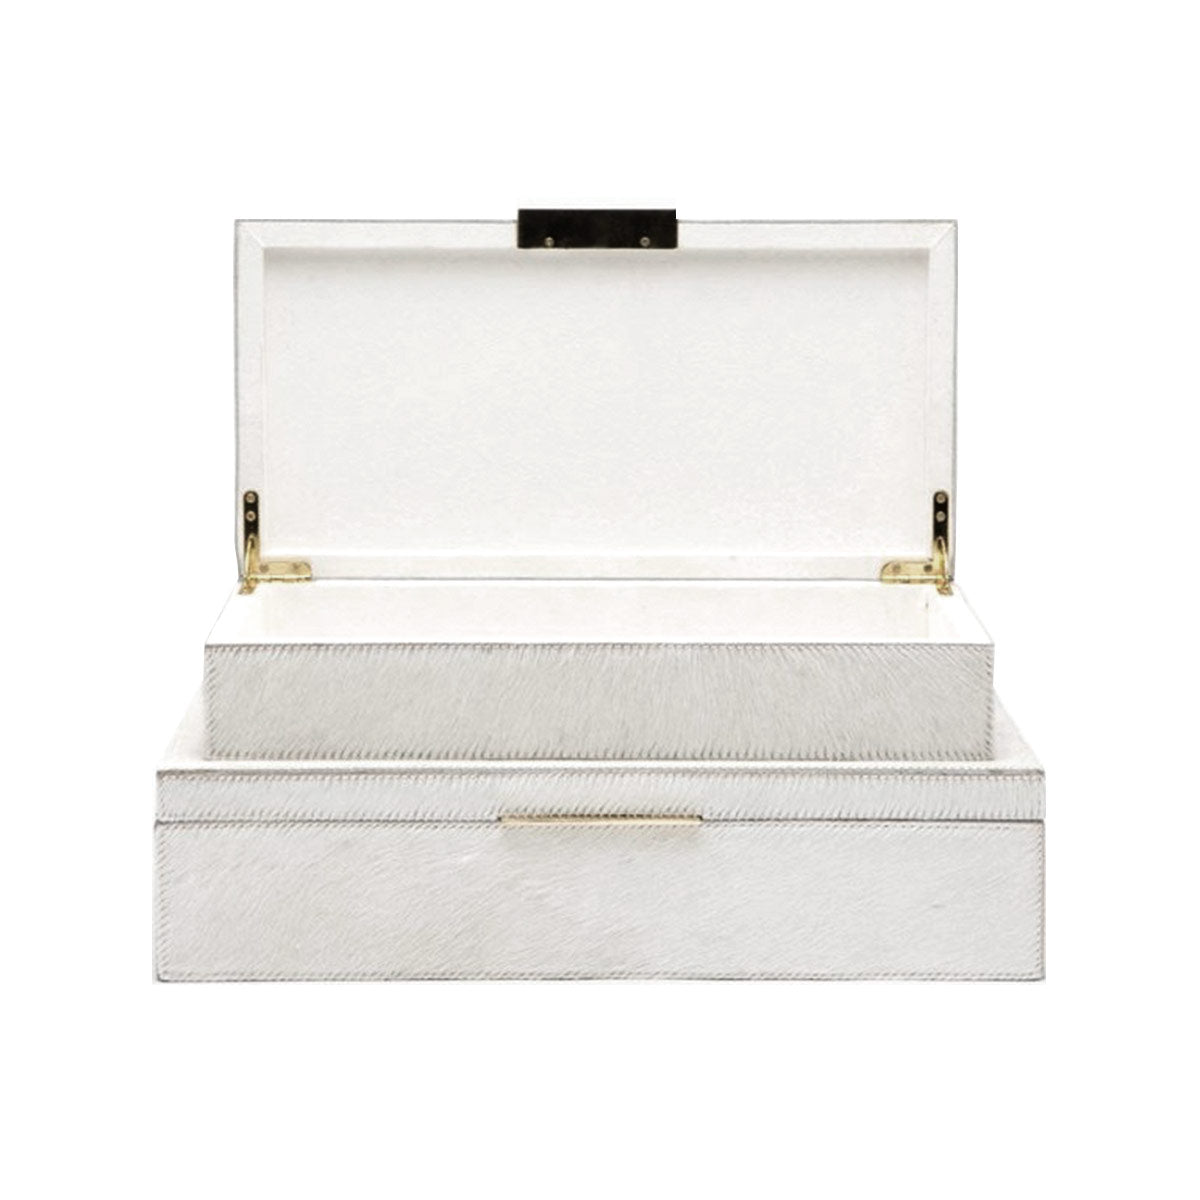 Ralston White Hair-On-Hide Small Box